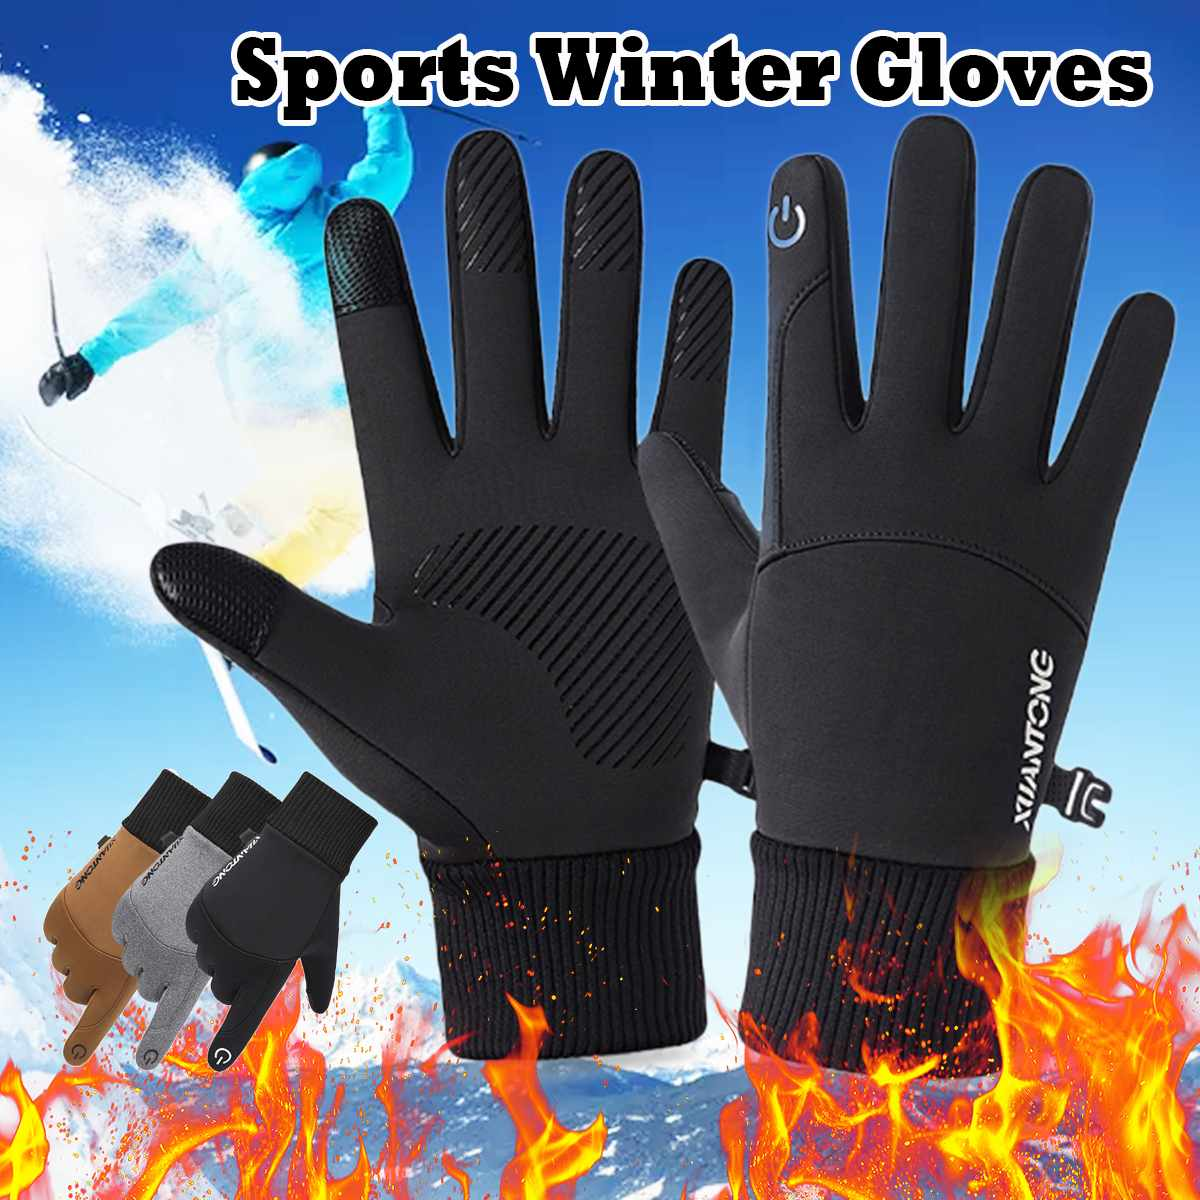 Winter Warm Thermal Gloves Ski Snow Snowboard Gloves Cycling Touchscreen Waterproof Winter Gloves For Men Women